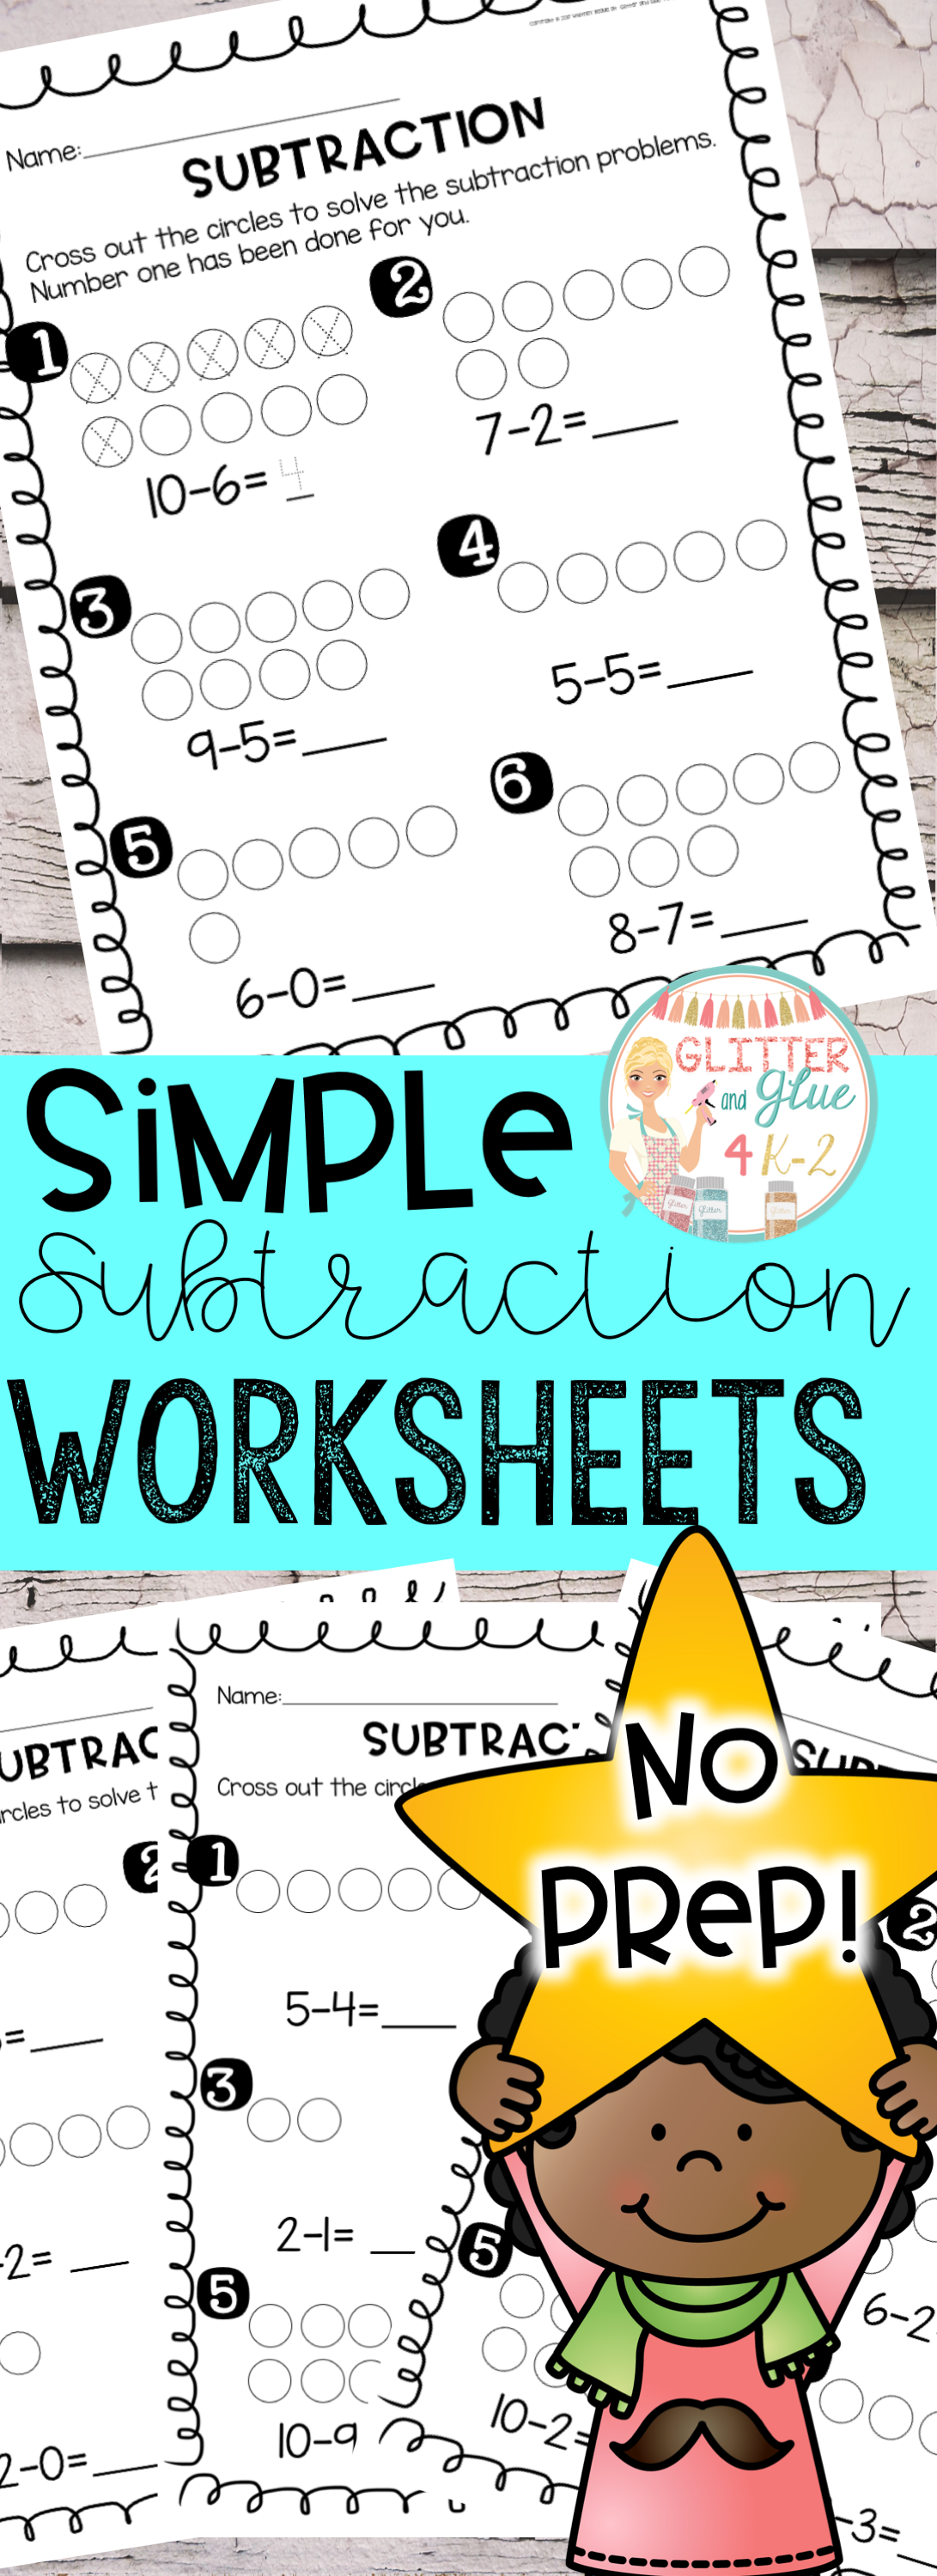 Simple Subtraction Worksheets An Introduction To